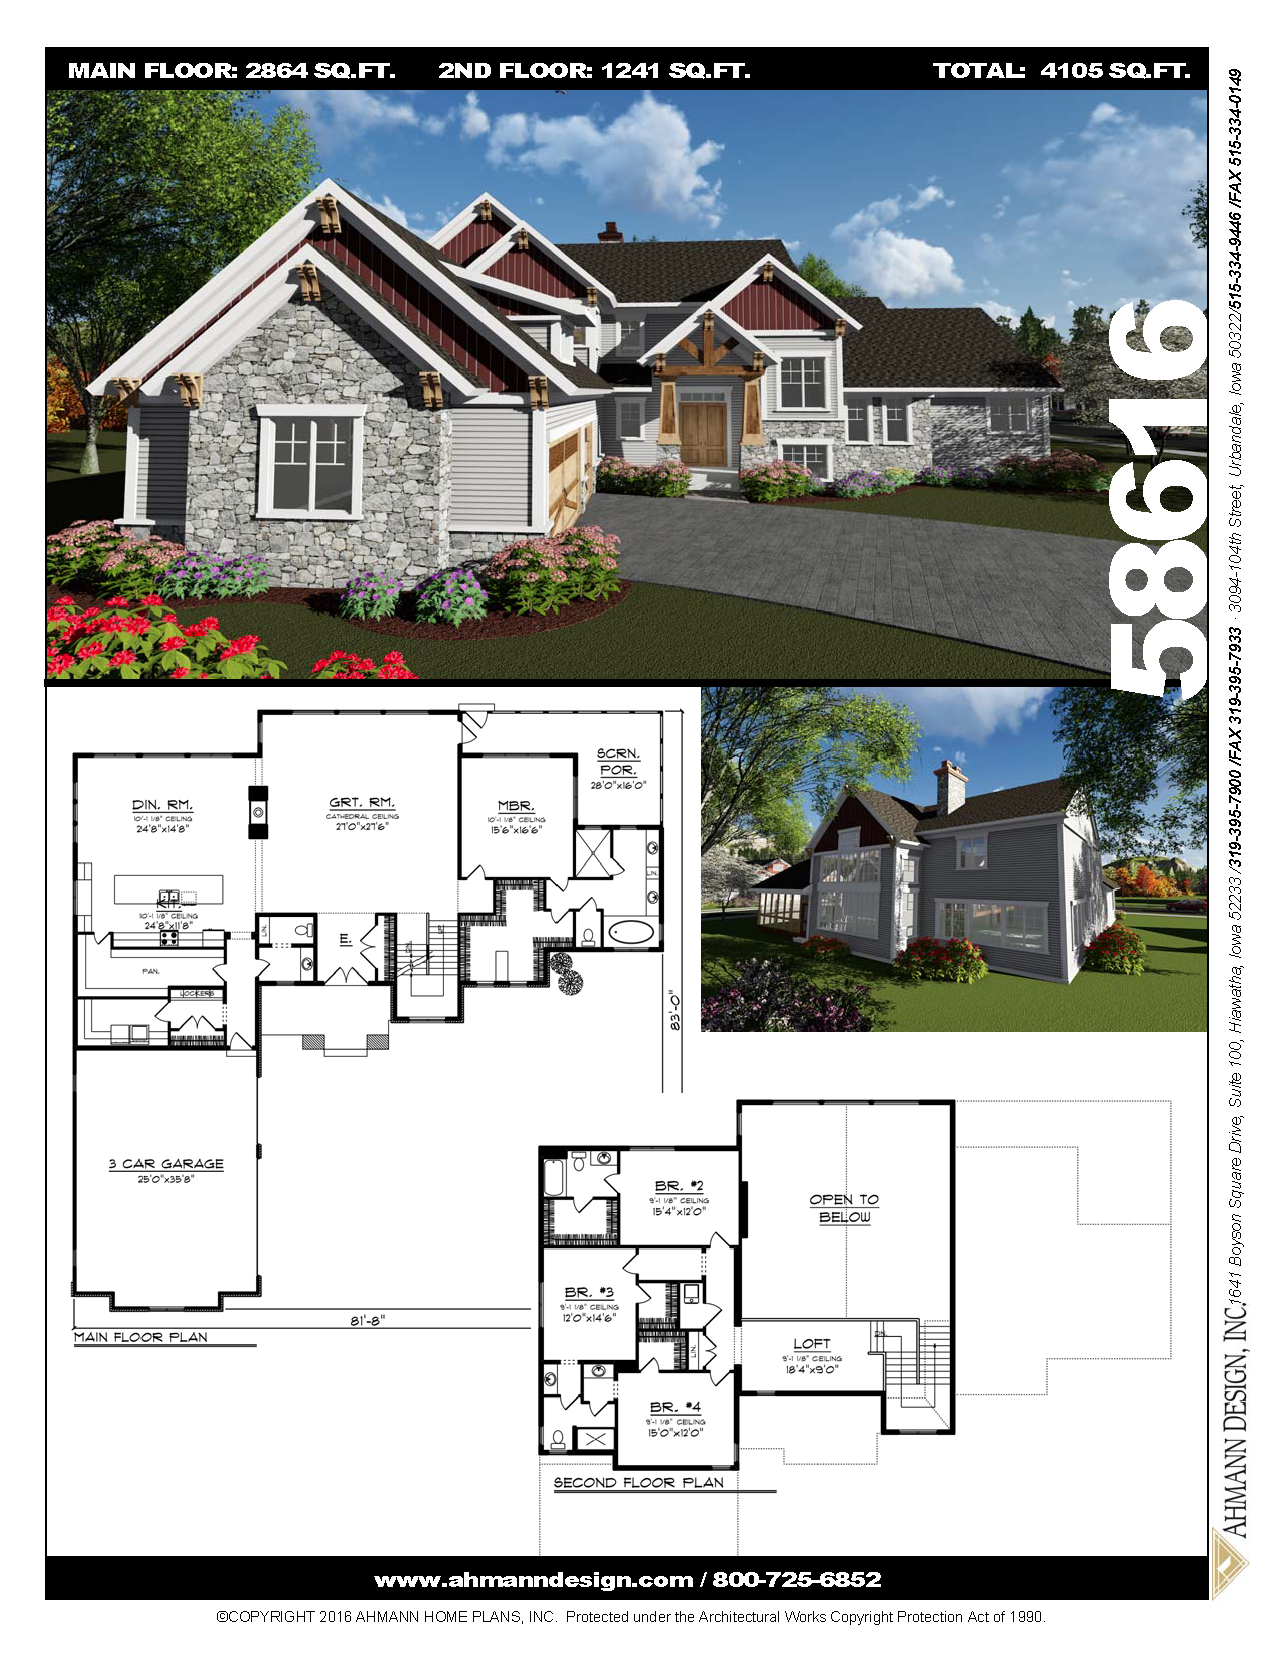 House plans · ahmann design plan 58616 massive columns define the entry of this craftsman style home drawing